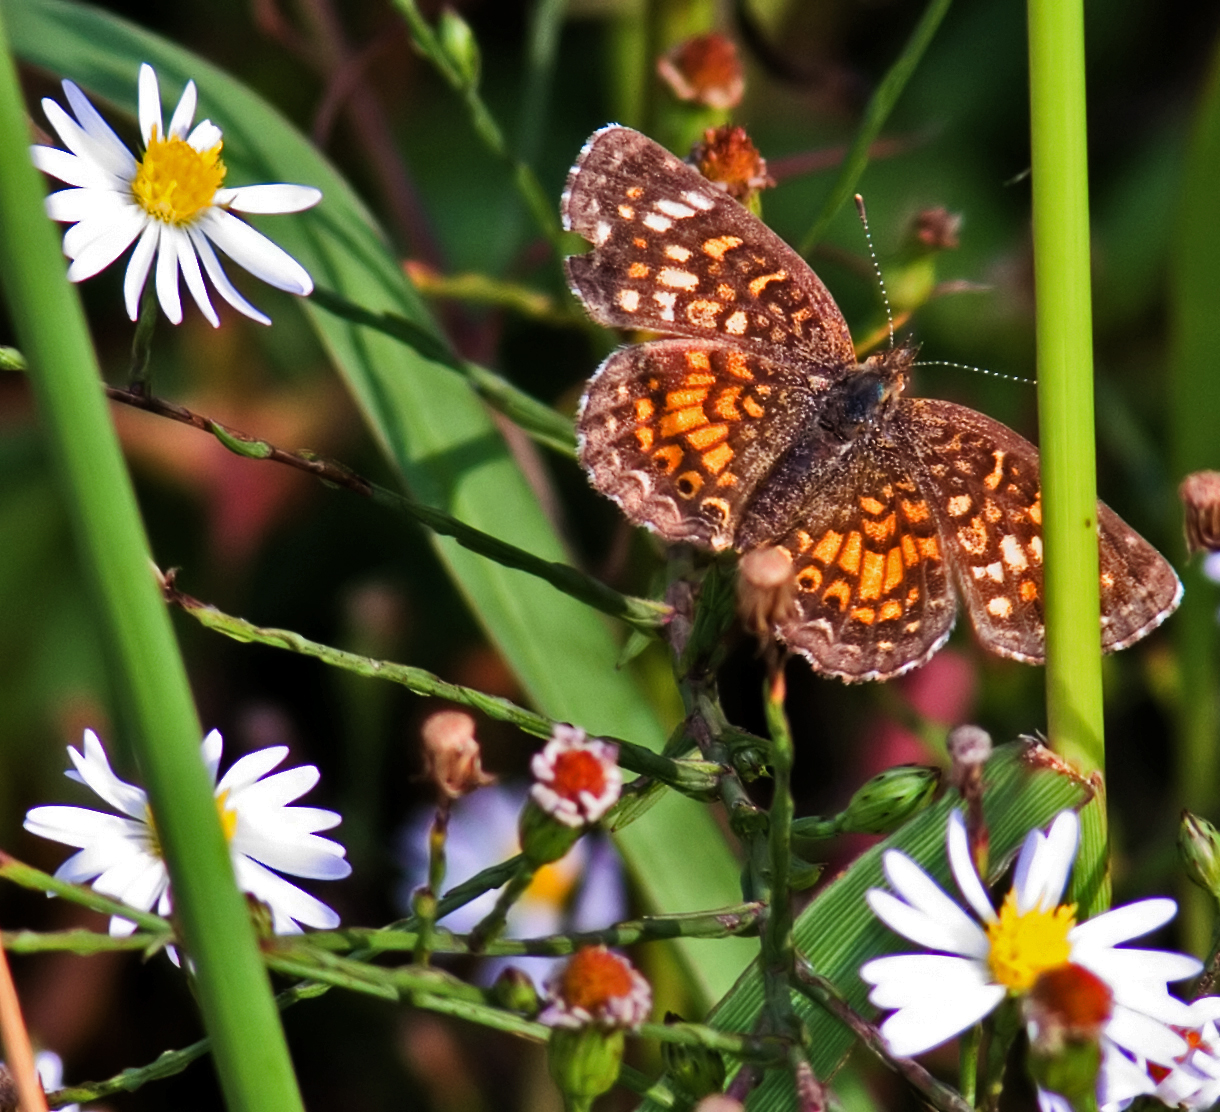 A phaon crescent, Phyciodes phaon